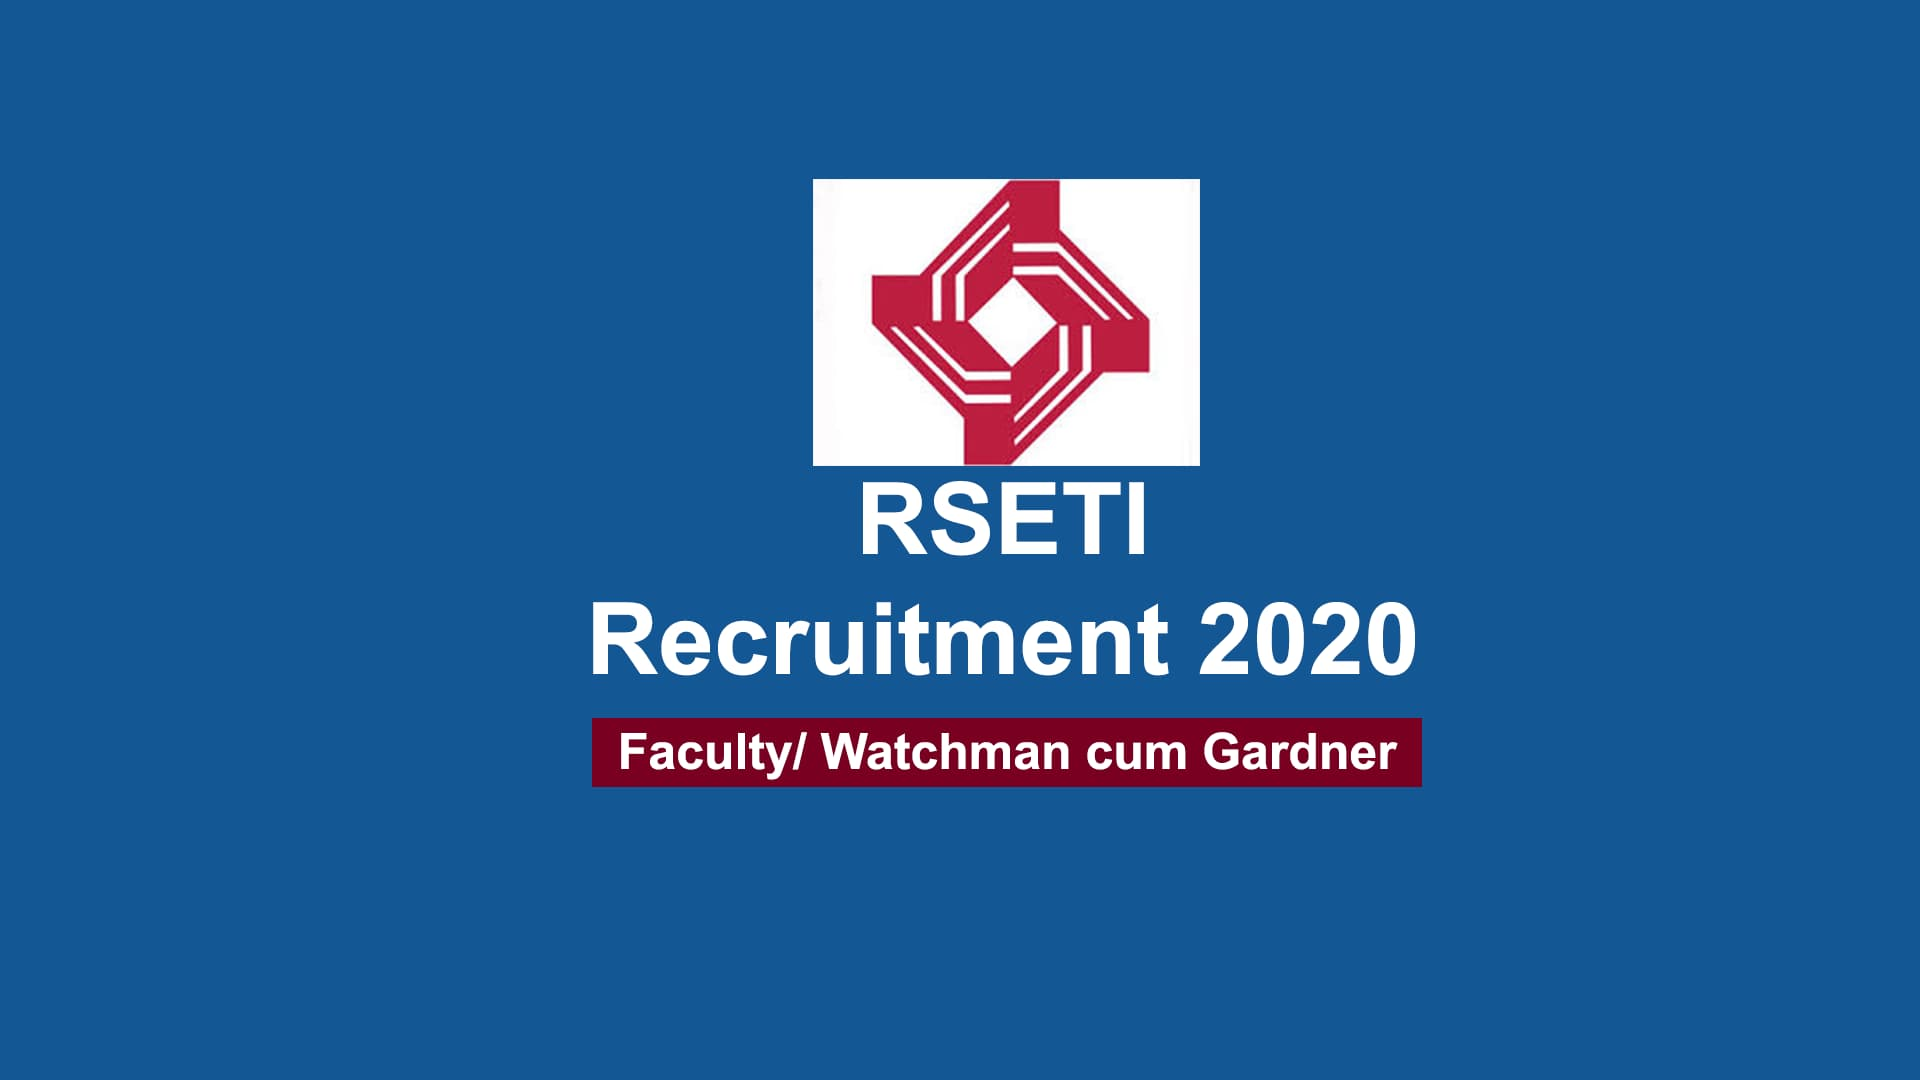 RSETI Recruitment 2020